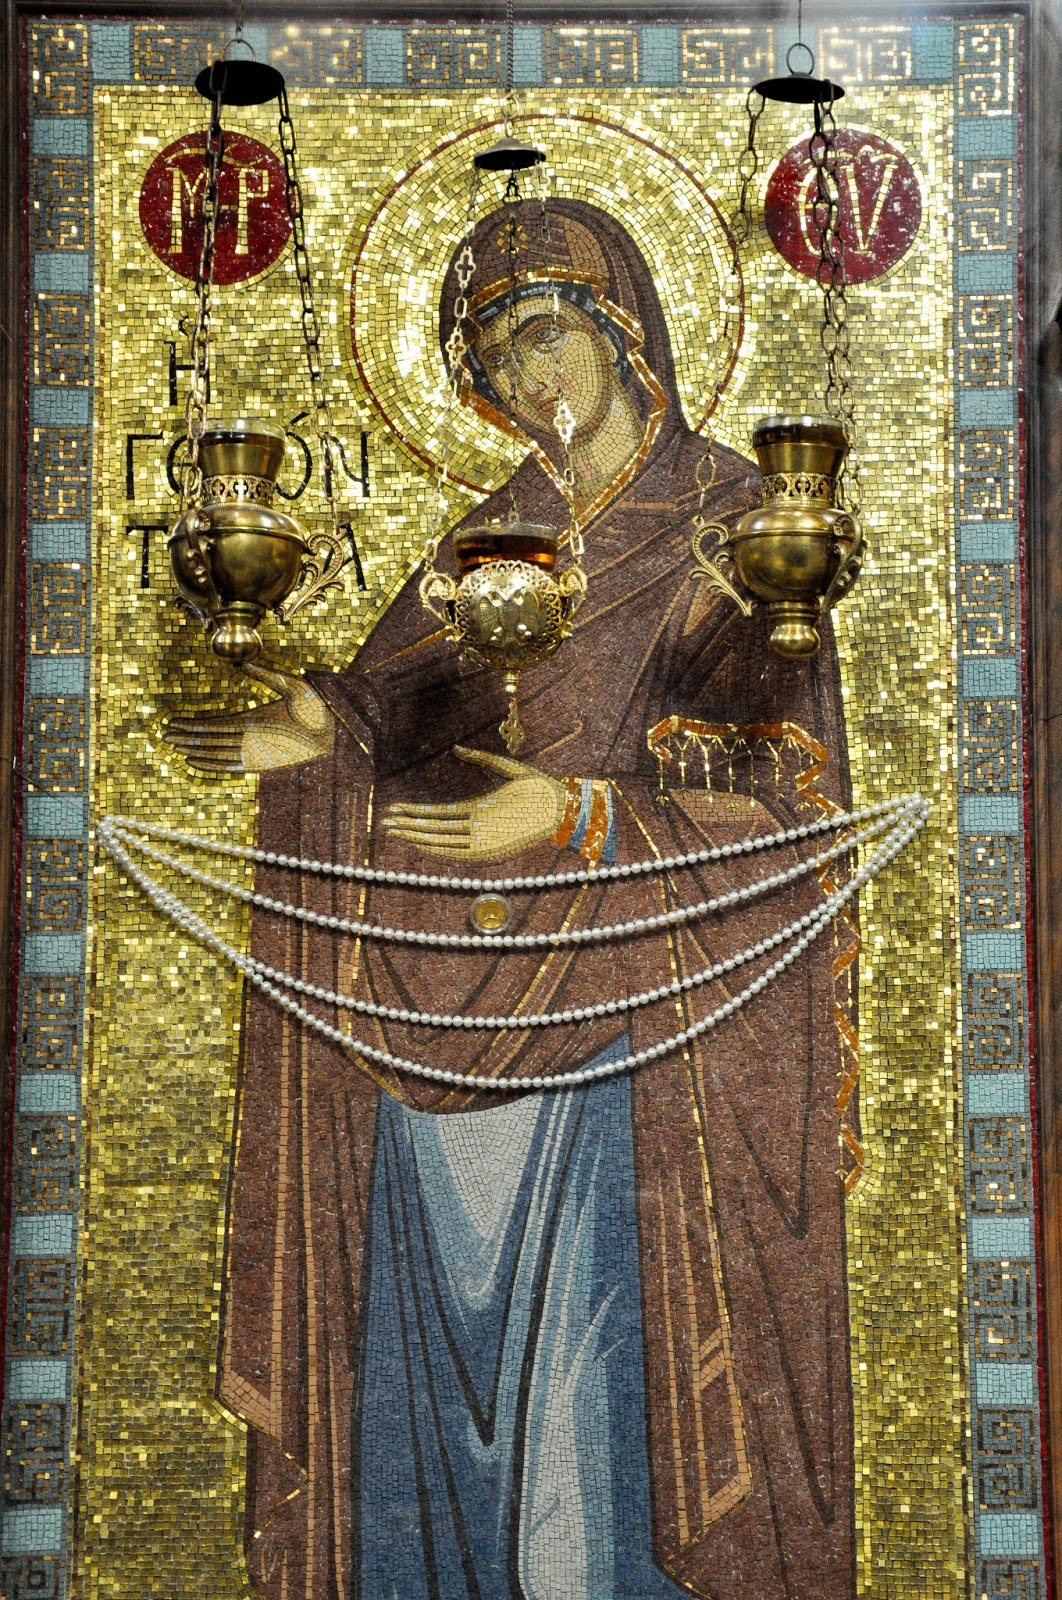 Icon of the Virgin Mary, Dormition of the Mother of God Cathedral, Varna